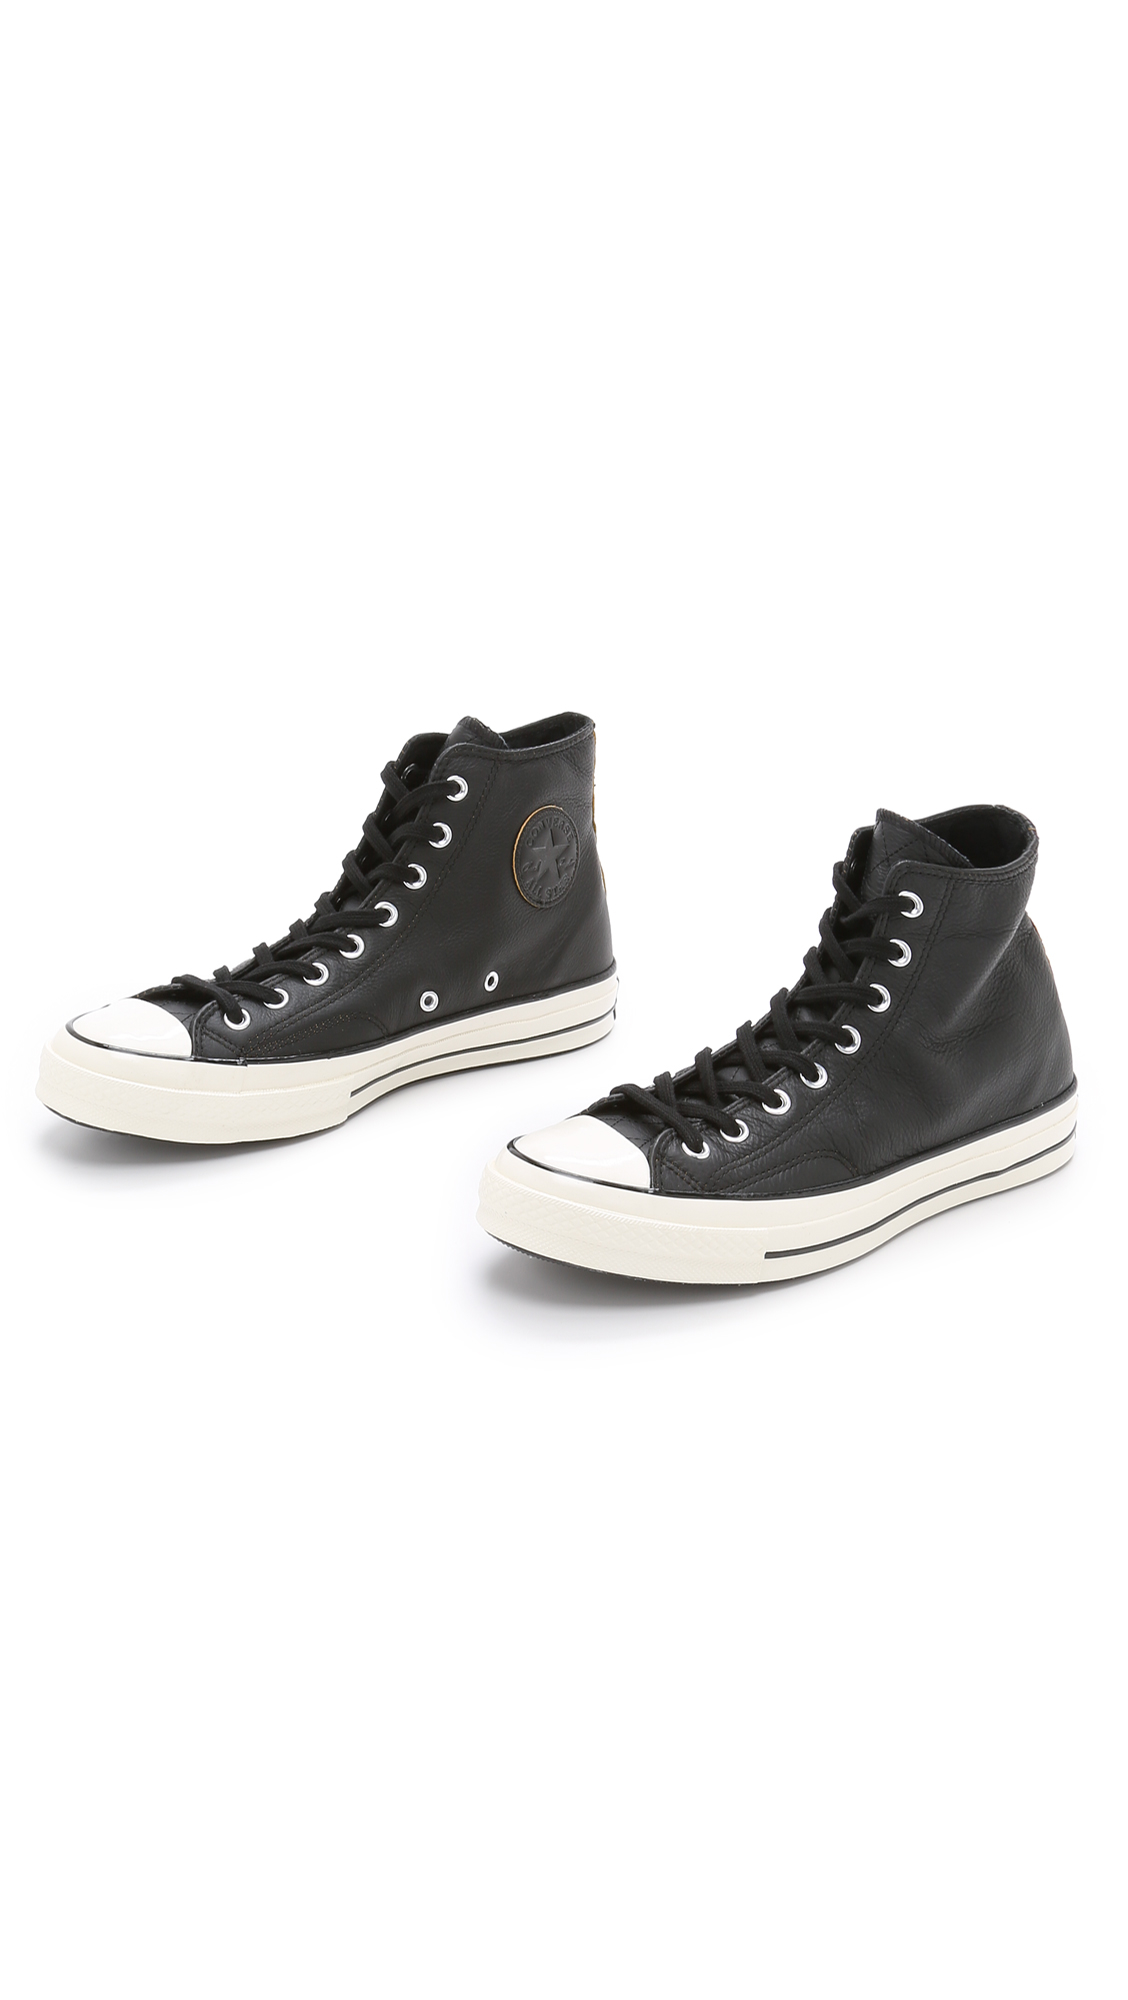 c04e4e94cb79 Converse Chuck Taylor All Star  70s Leather High Top Sneakers in ...